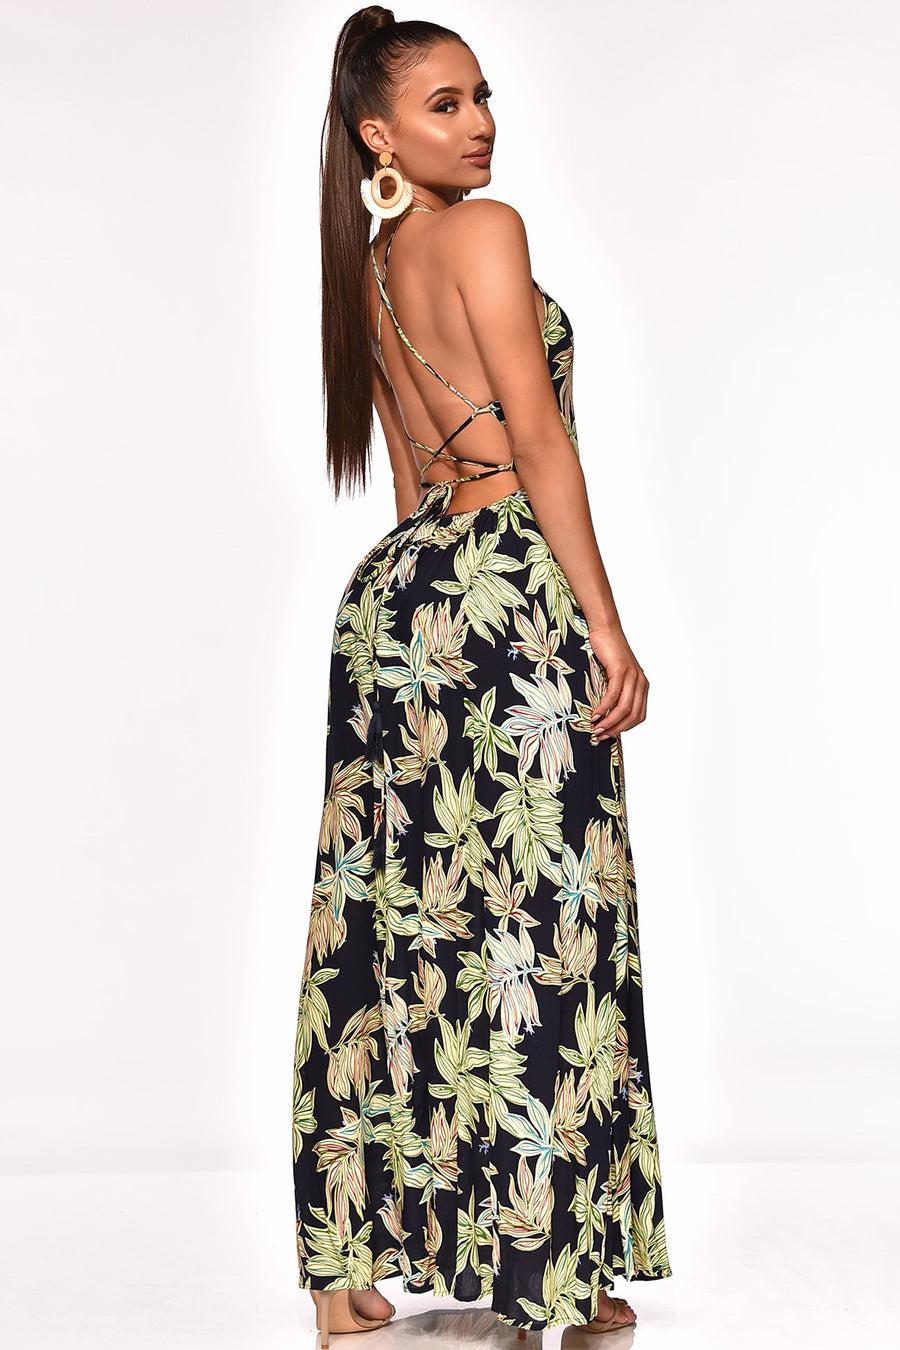 BEACH BUNGALOW MAXI